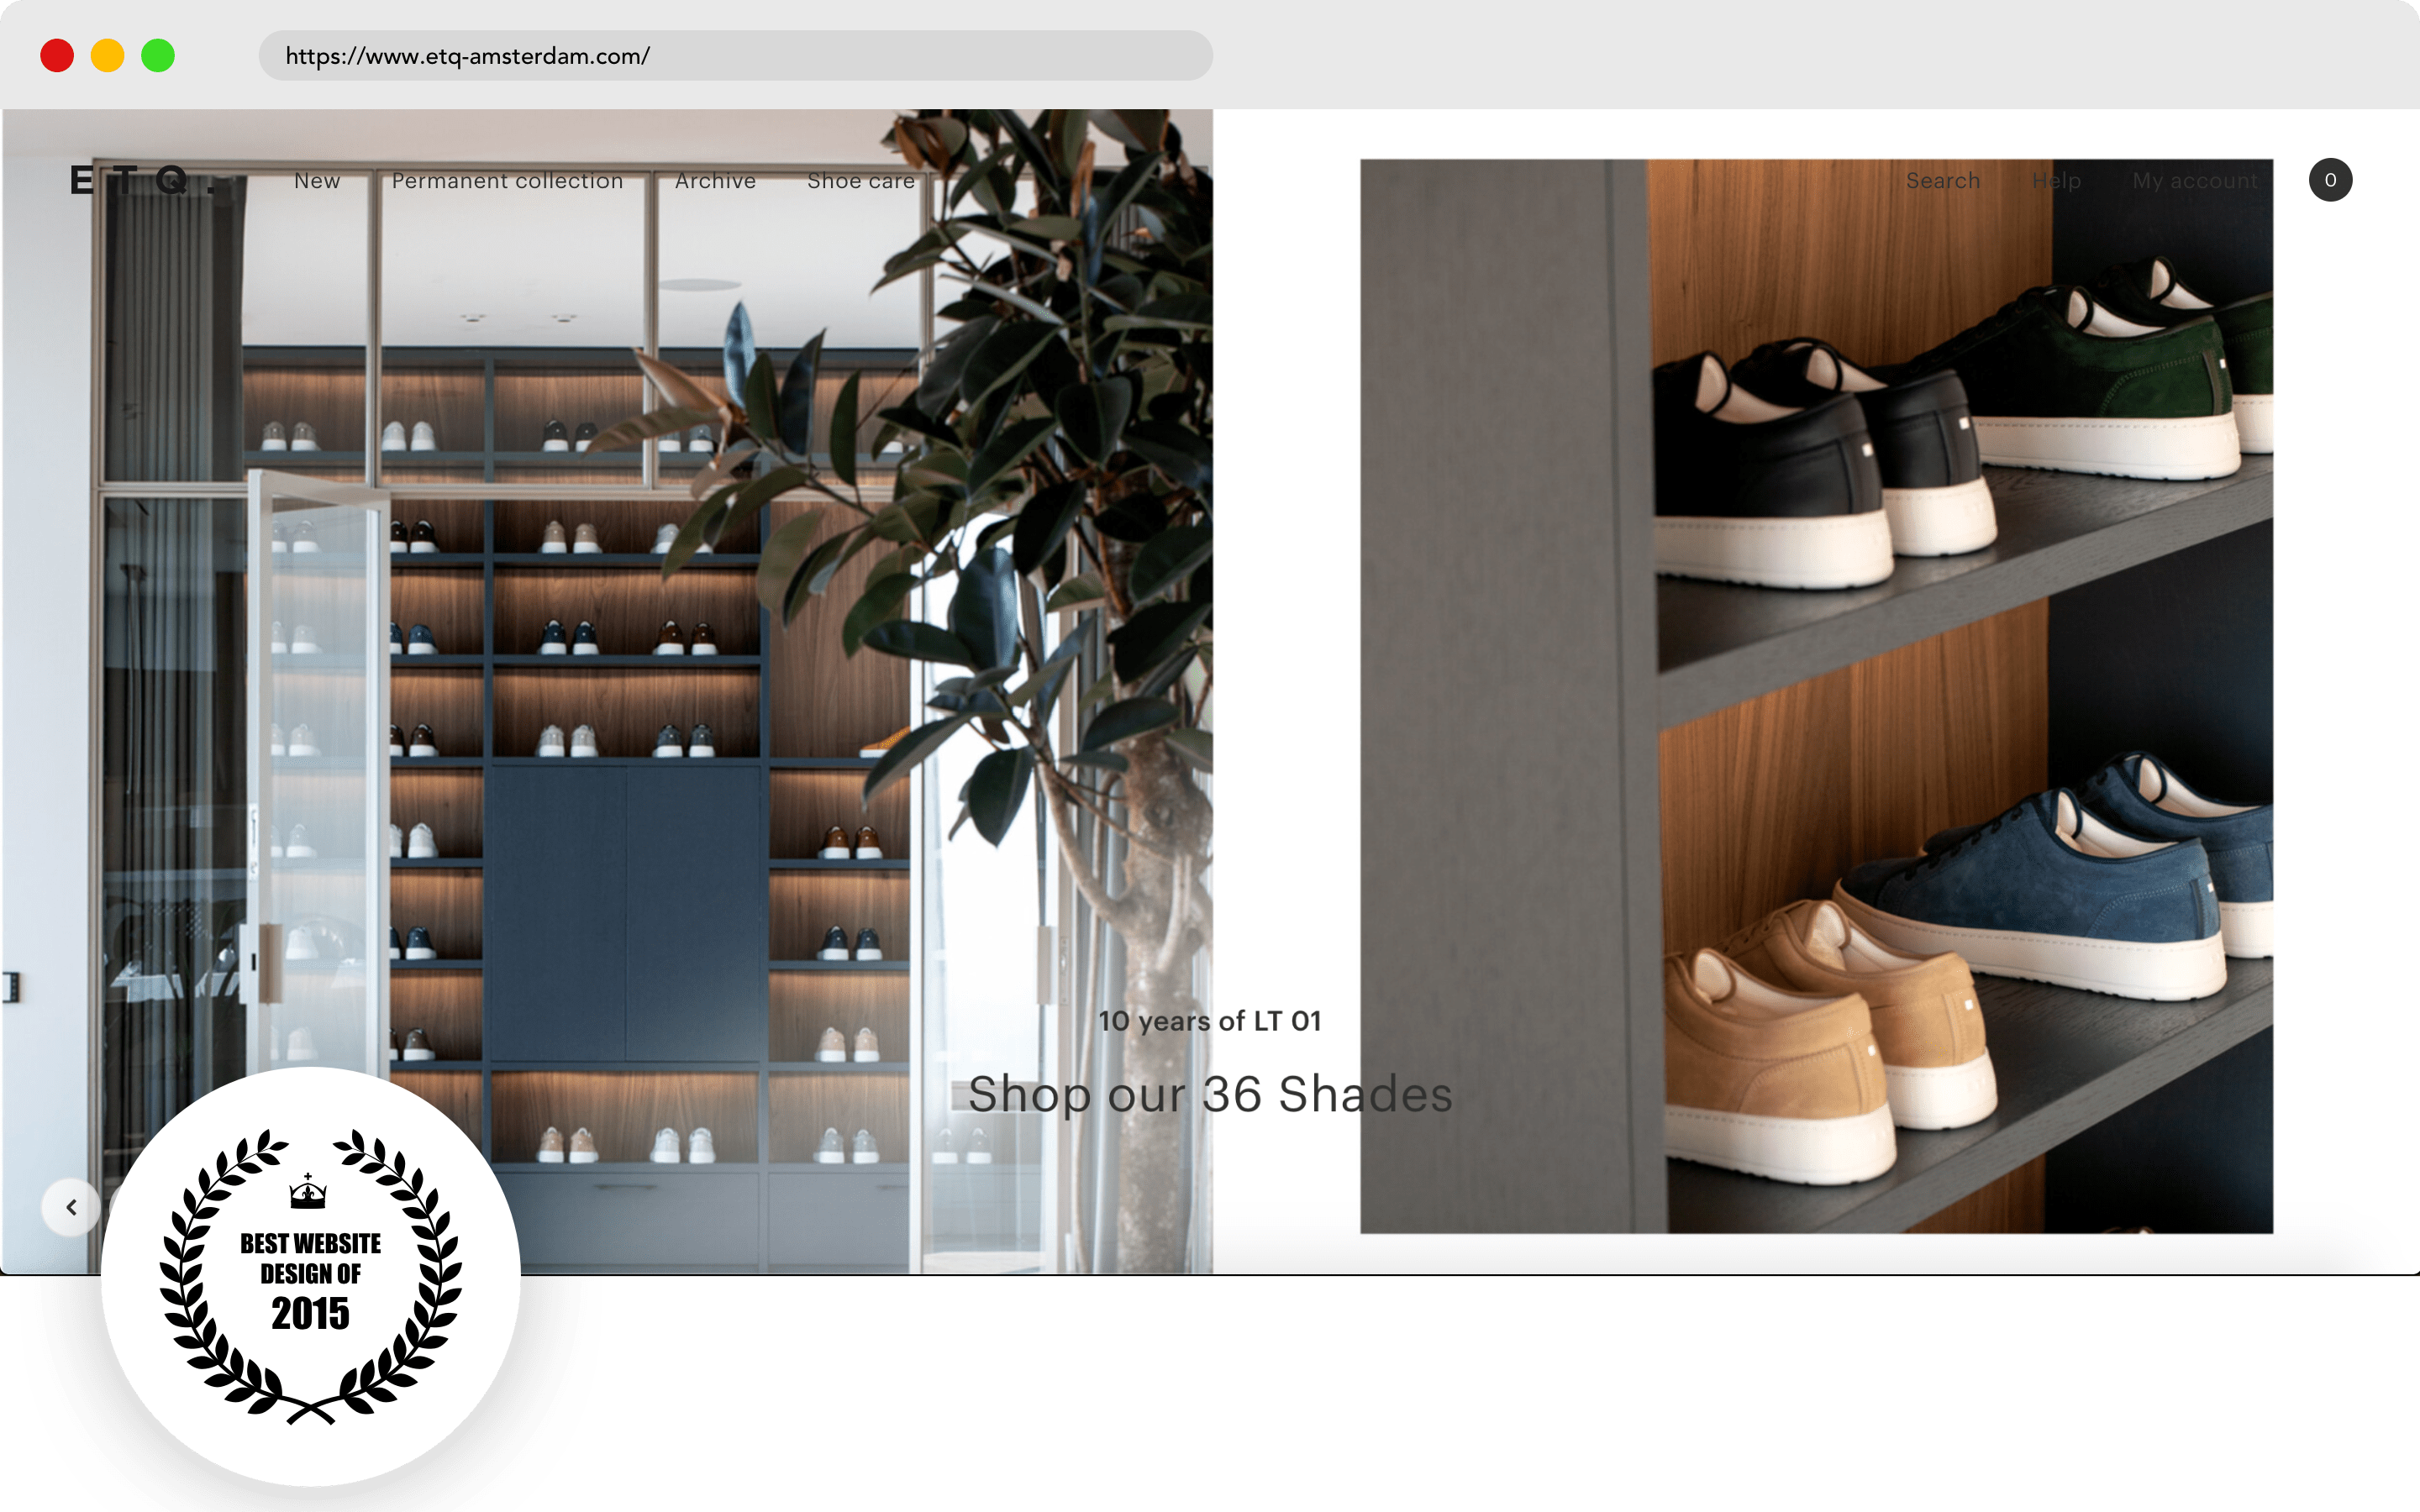 ETQ Amsterdam Website Design